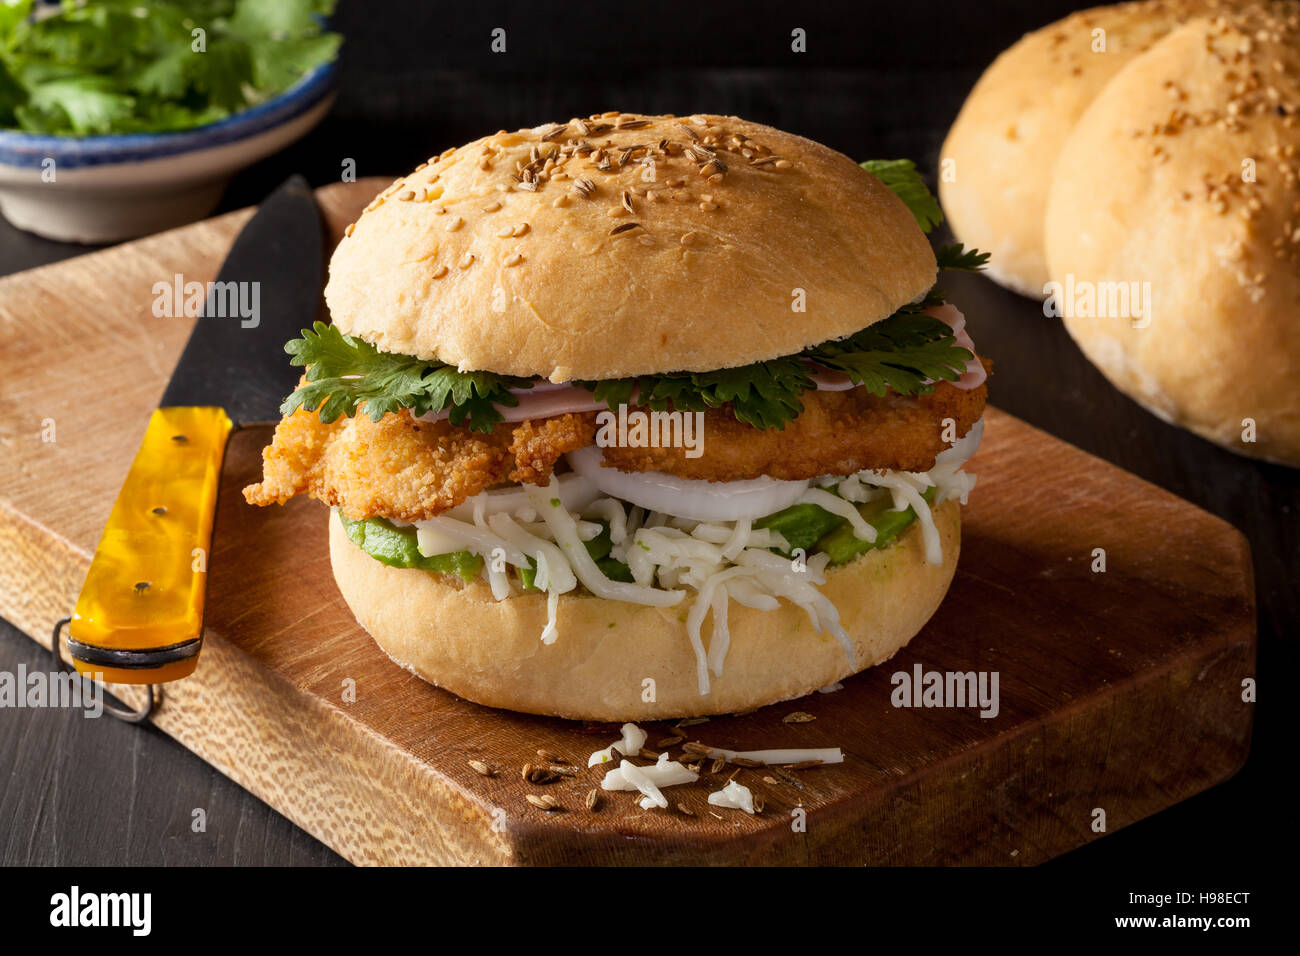 The cemita poblana is a typical sandwich from Mexico sold as street food. - Stock Image